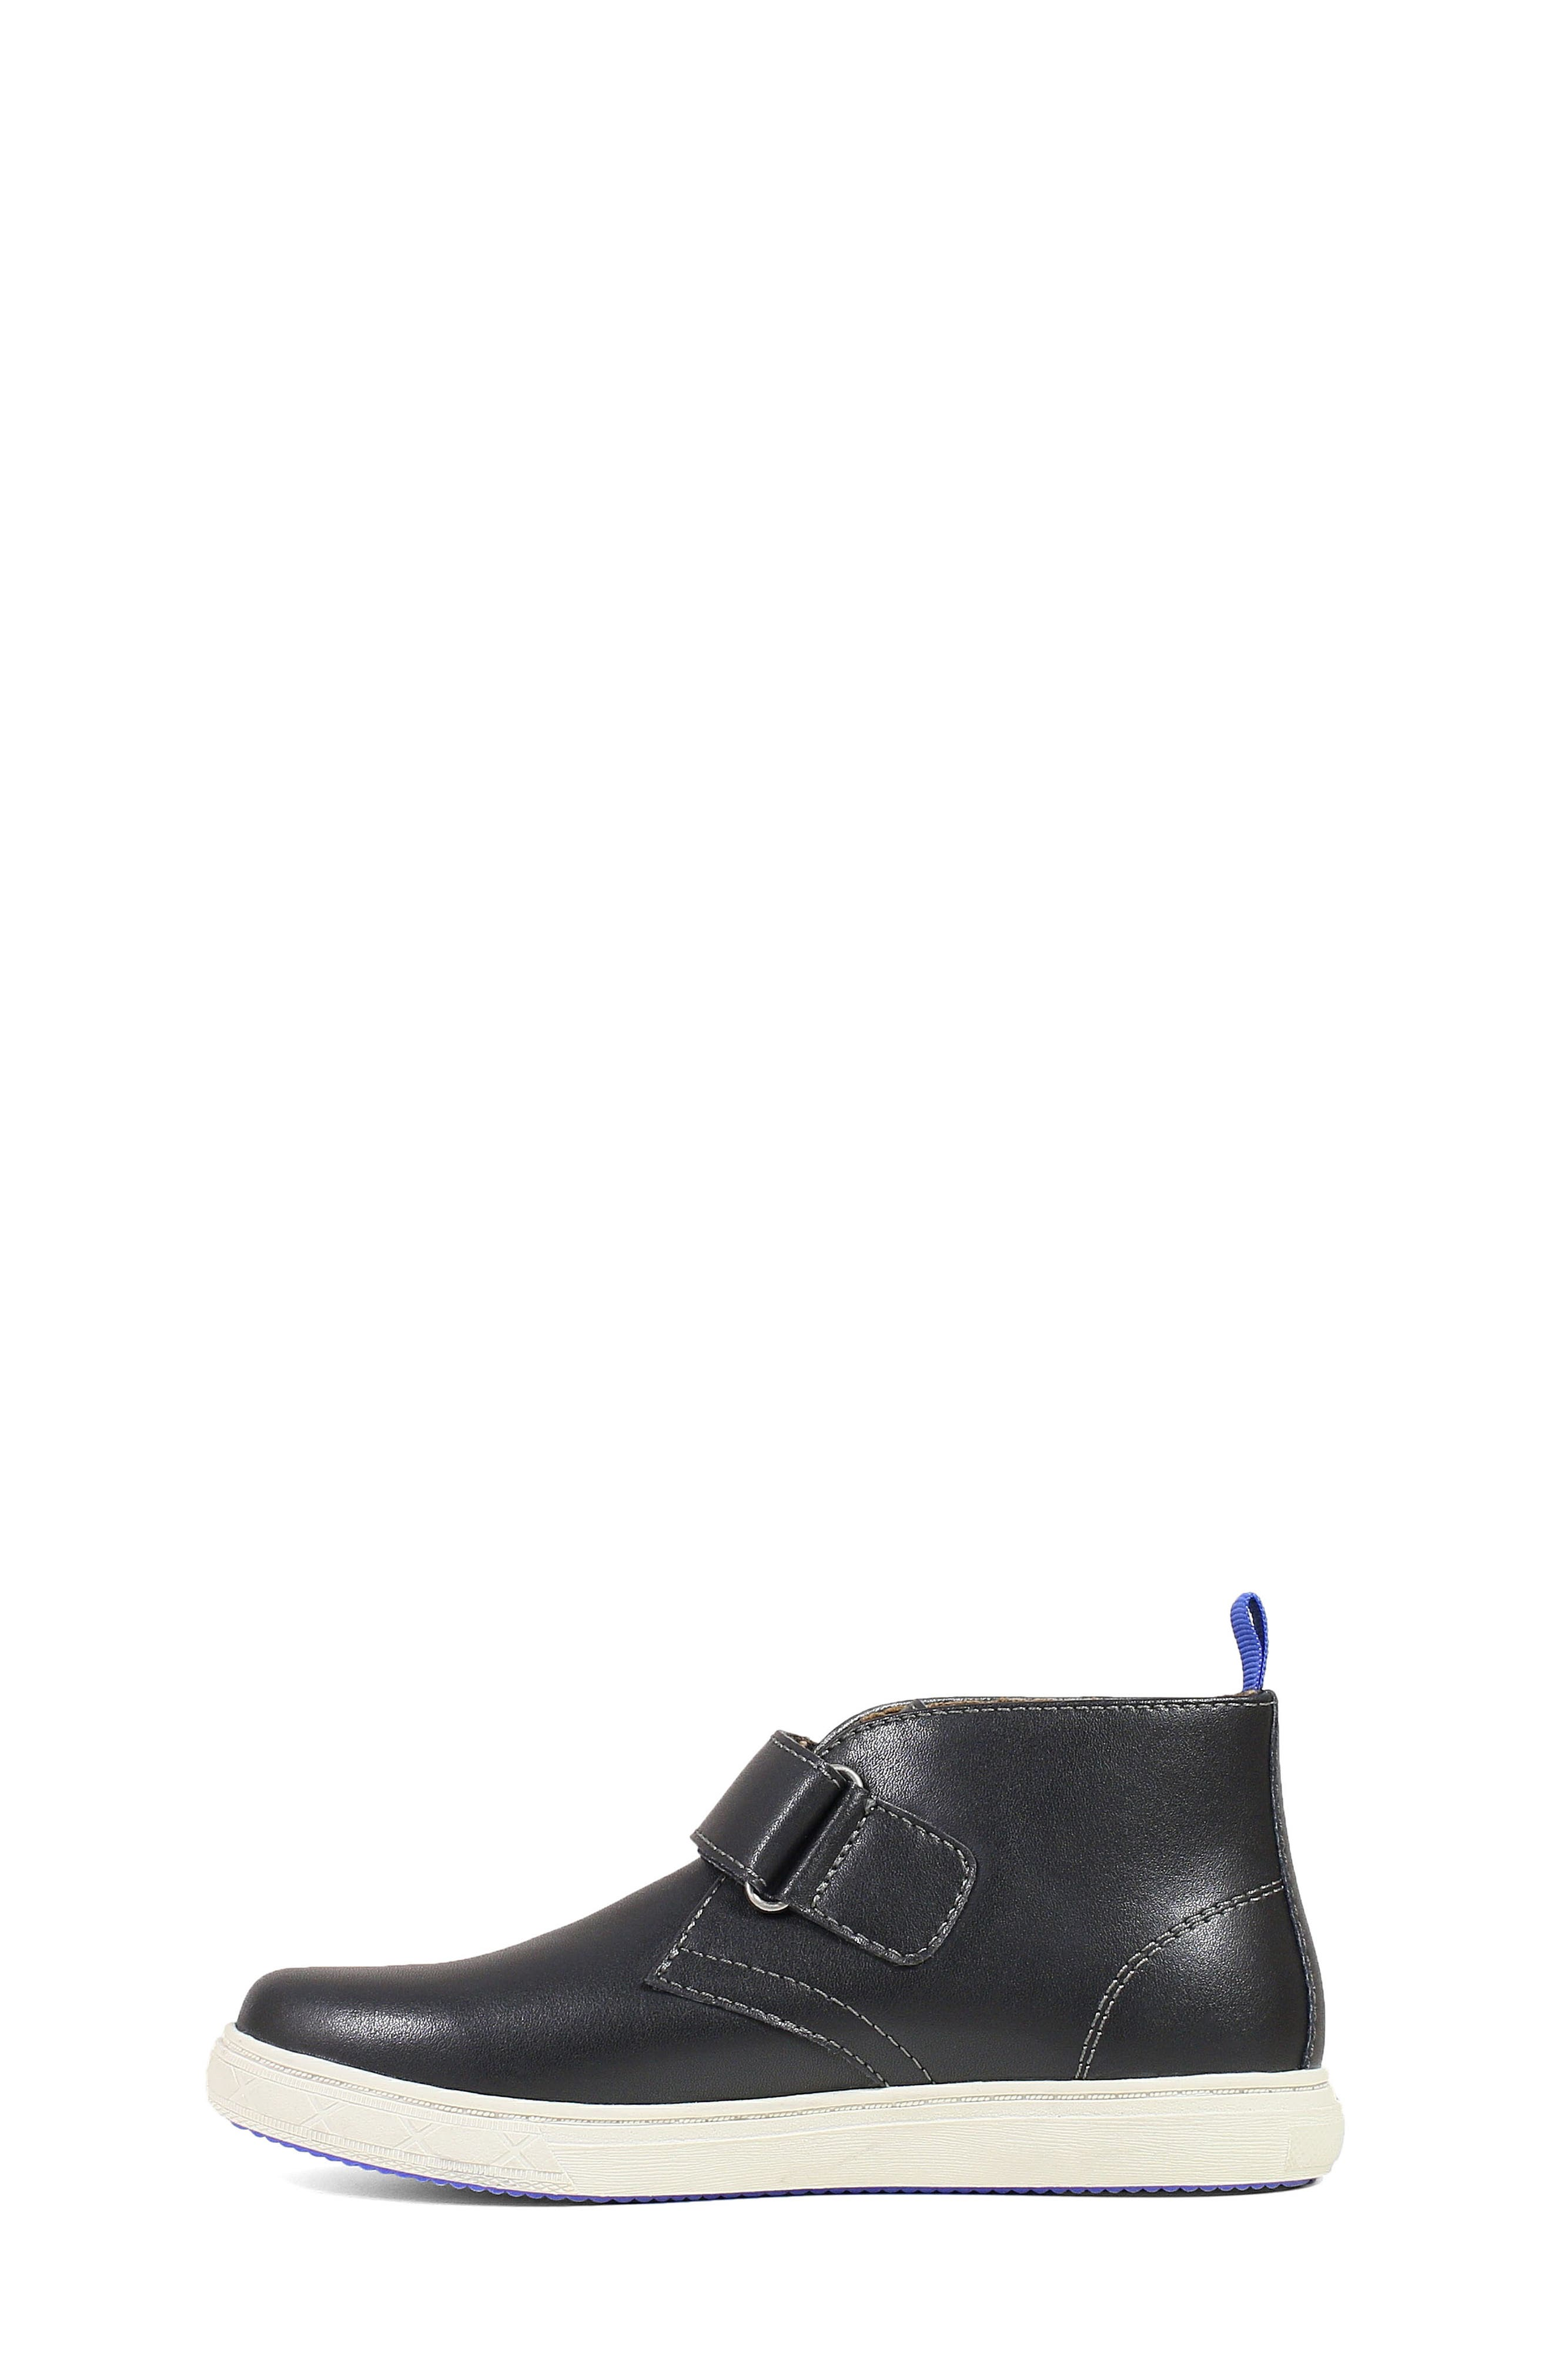 FLORSHEIM, Curb Chukka Boot, Alternate thumbnail 3, color, BLACK LEATHER